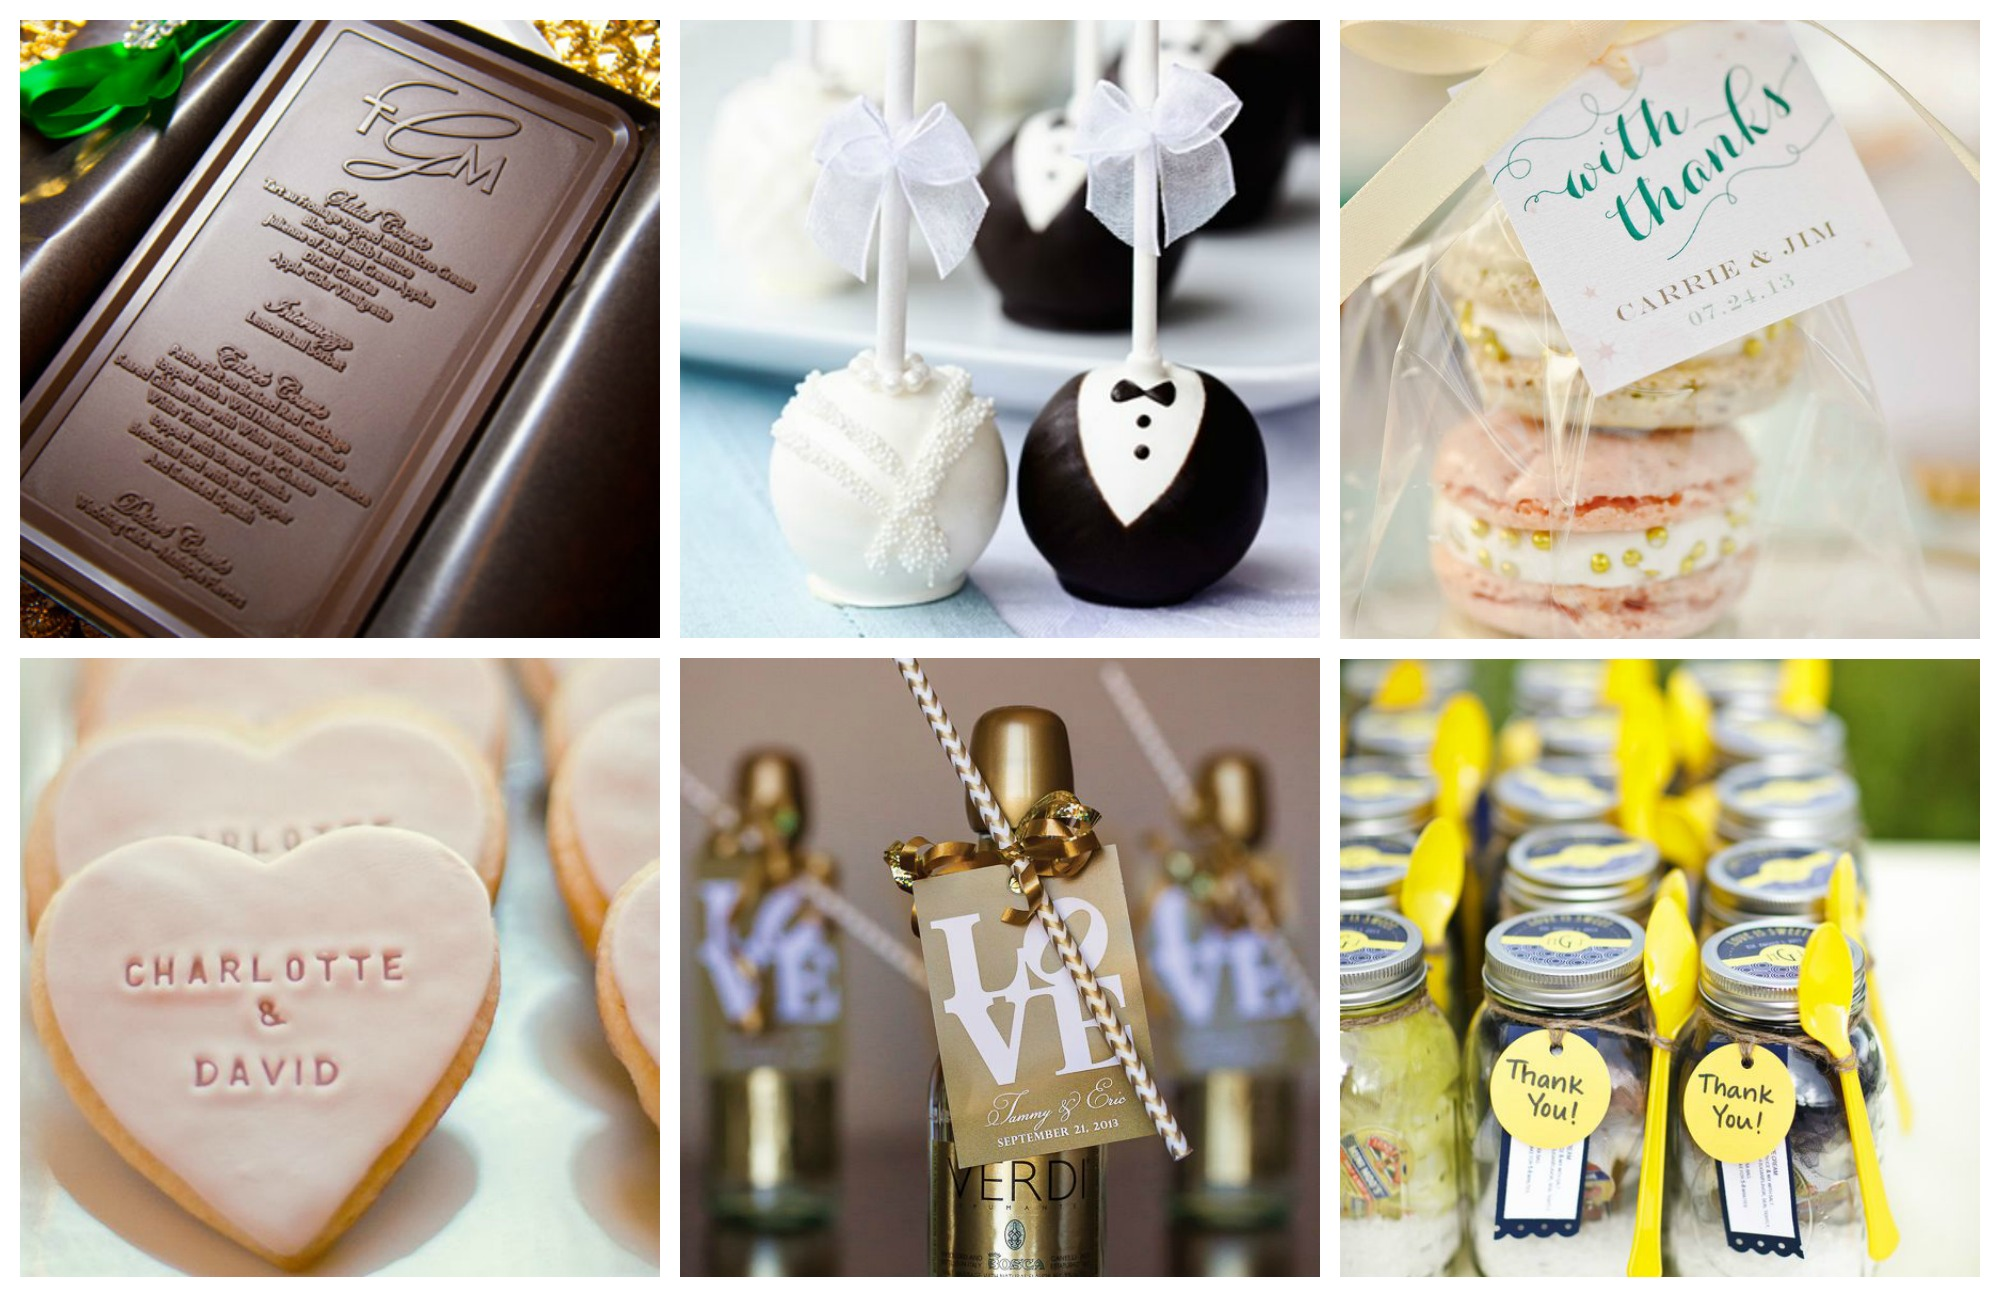 edible fall wedding favors the hippest pics